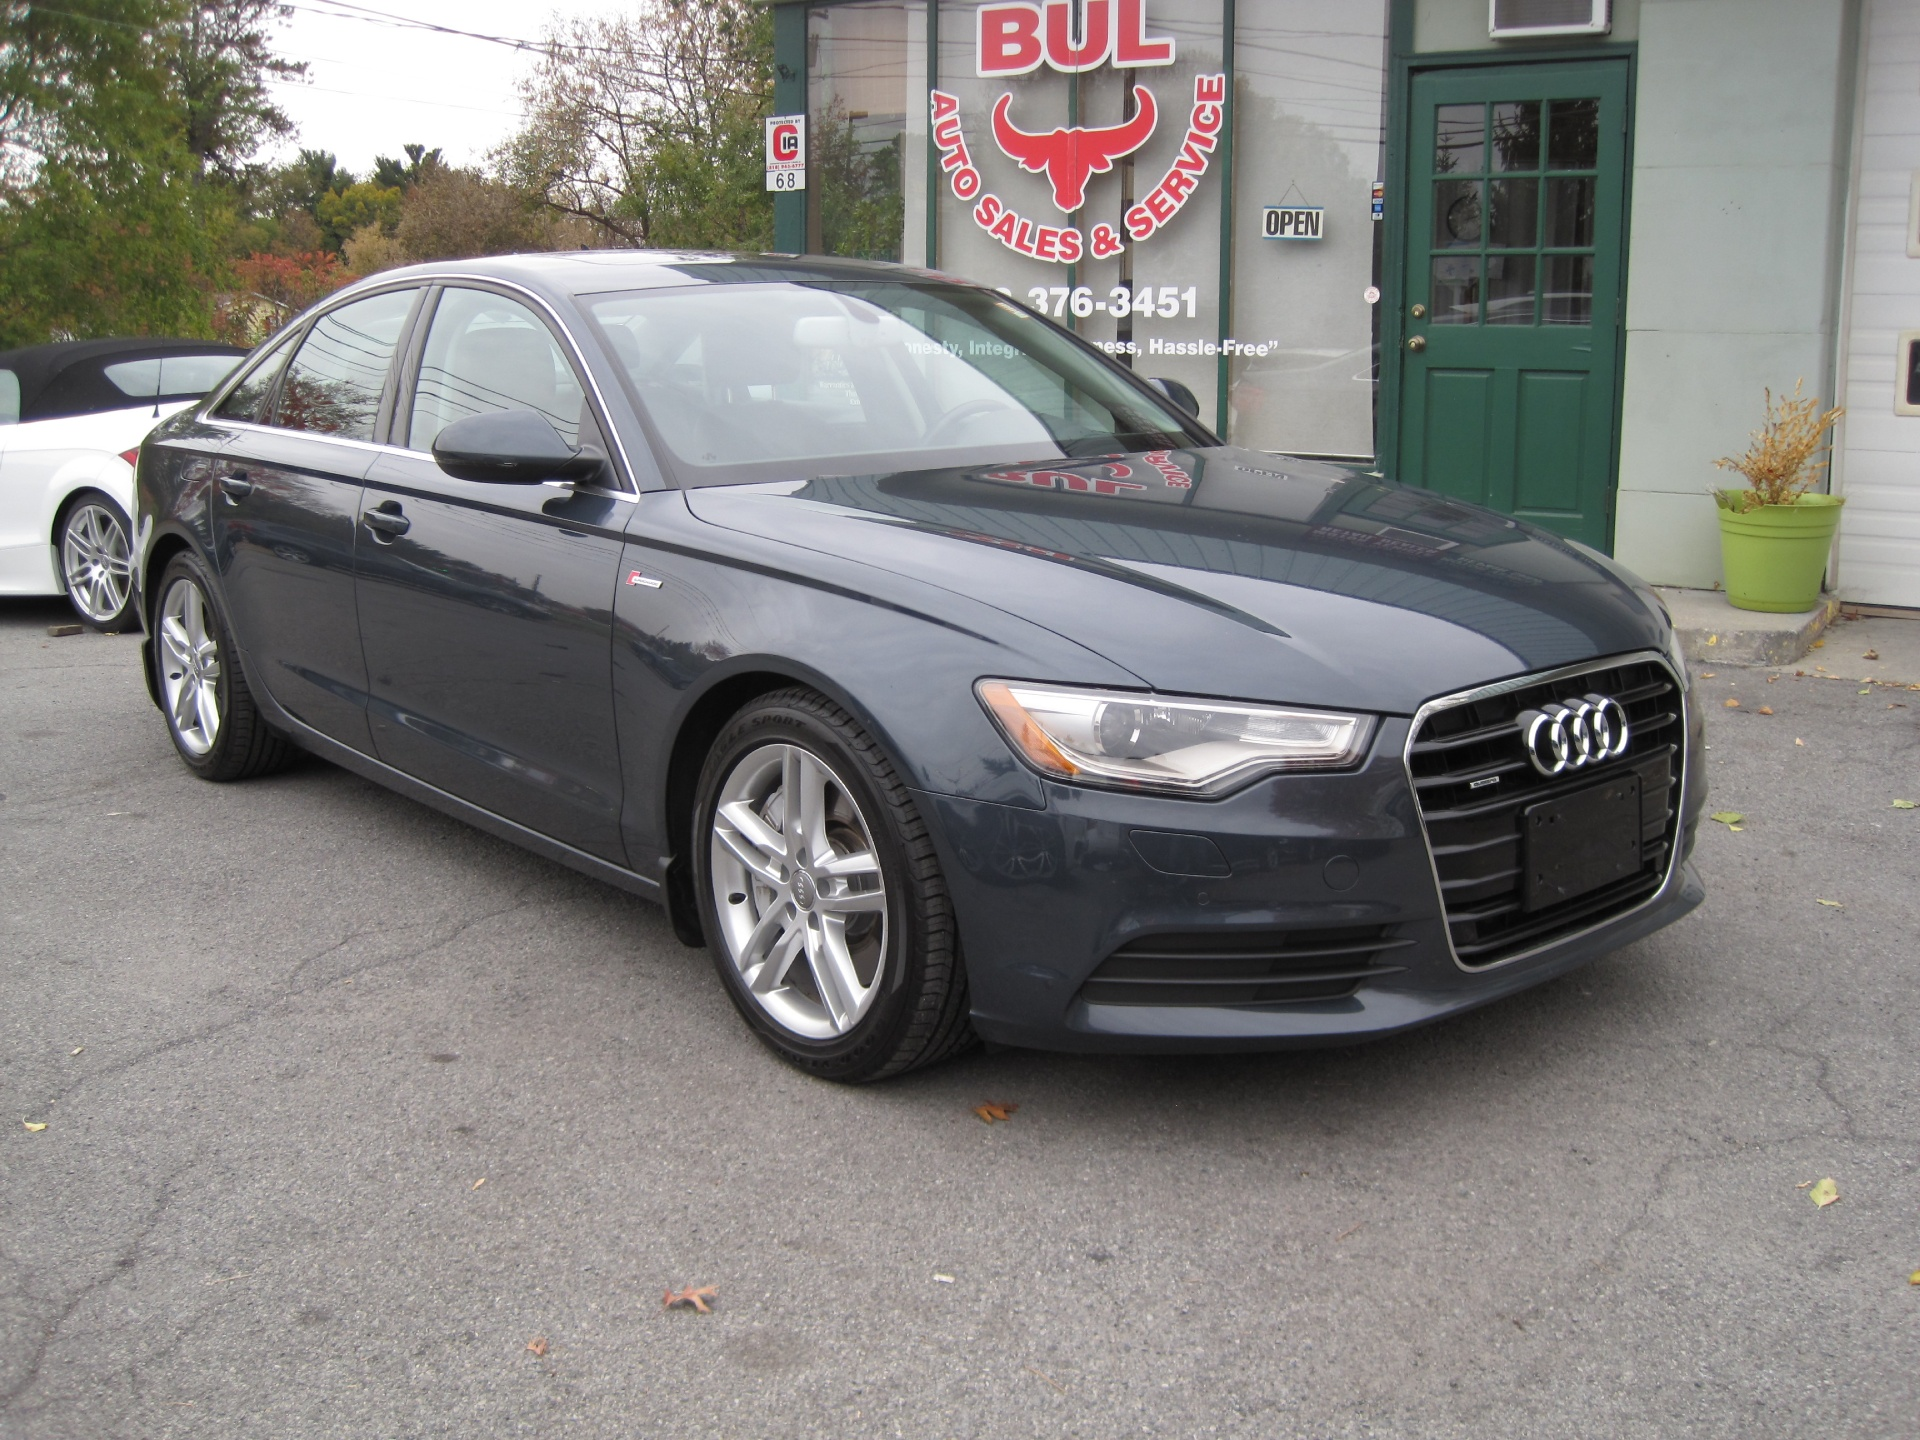 2012 audi a6 3 0t quattro premium plus loaded with options super clean stock 15153 for sale. Black Bedroom Furniture Sets. Home Design Ideas